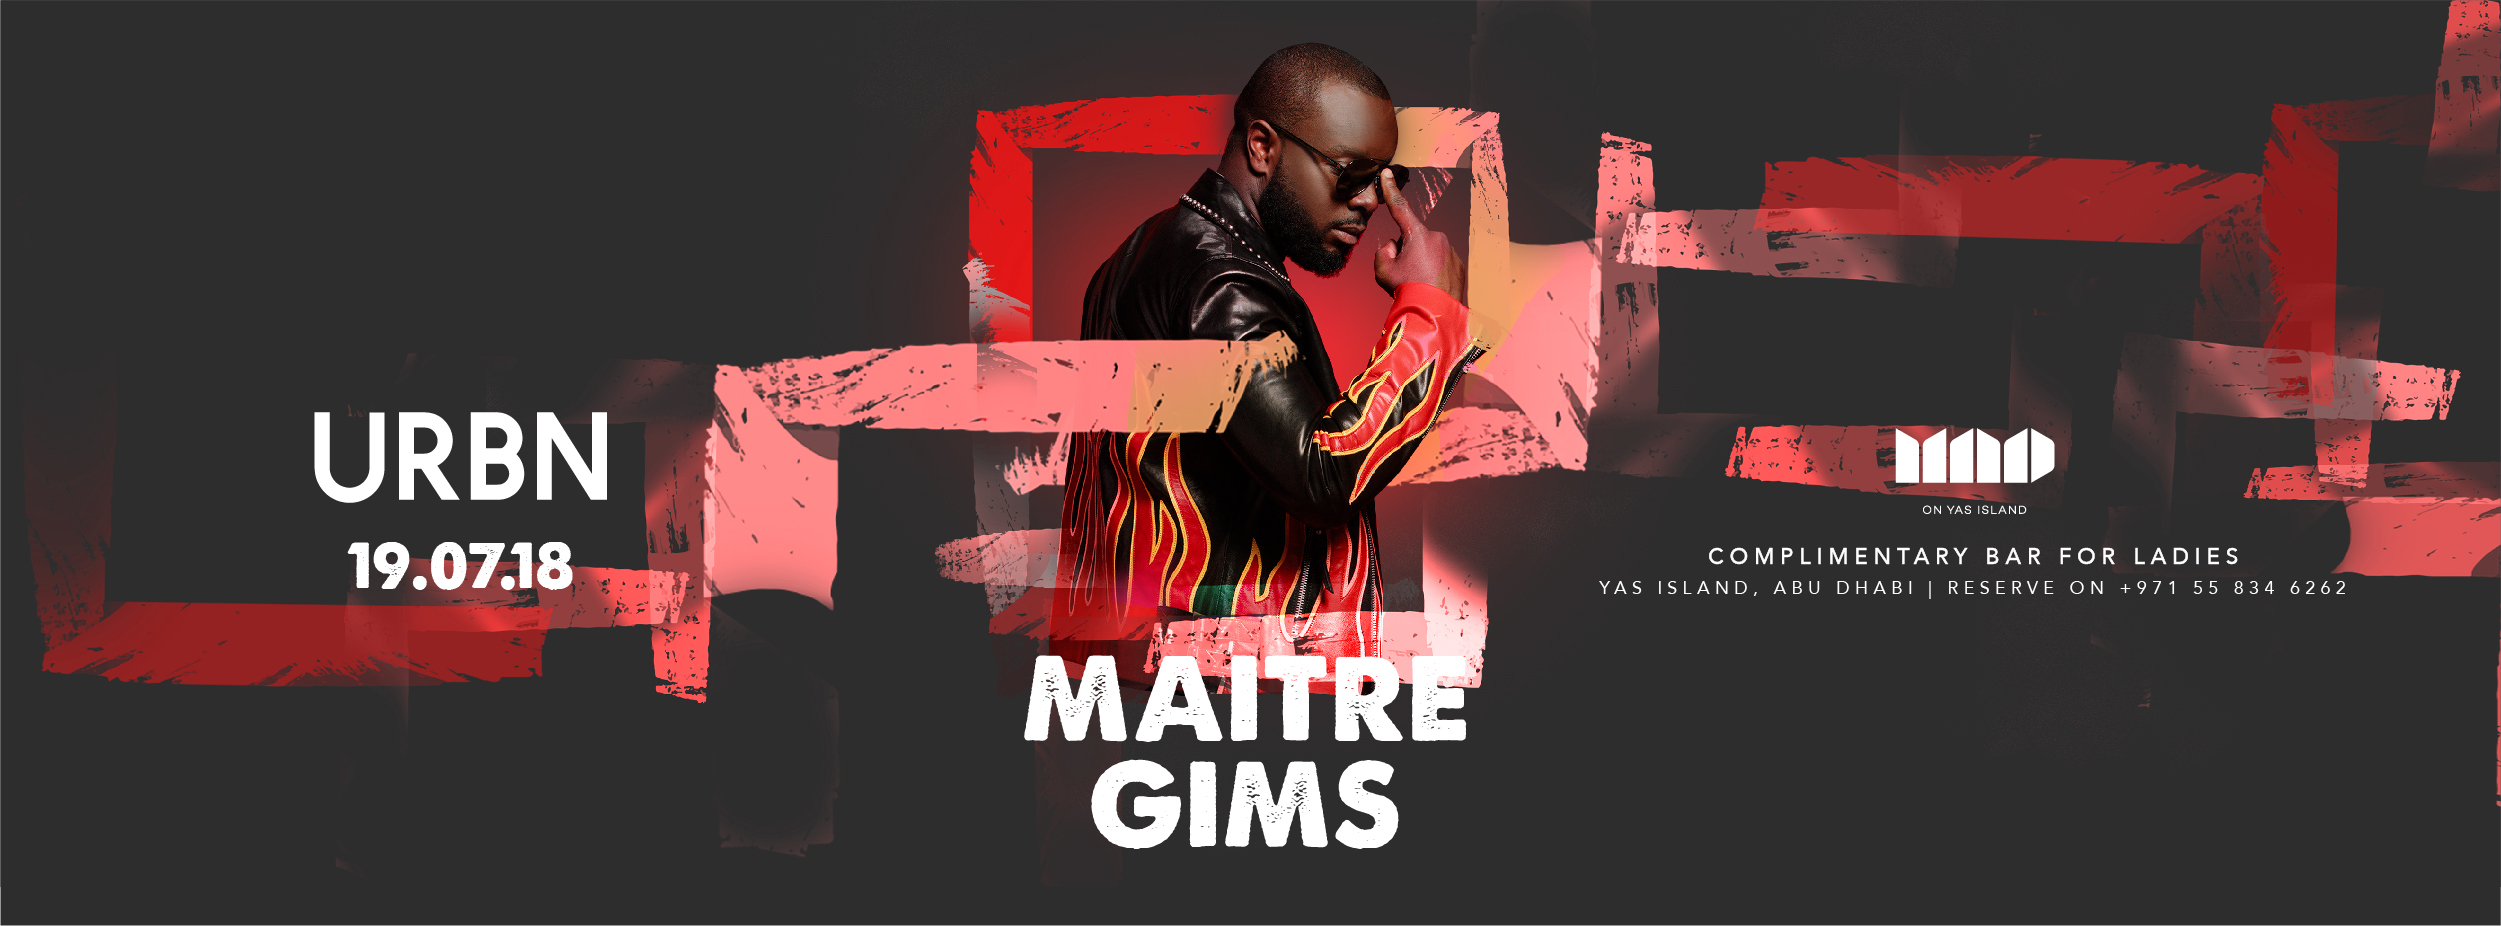 Maitre Gims at Mad on Yas Island